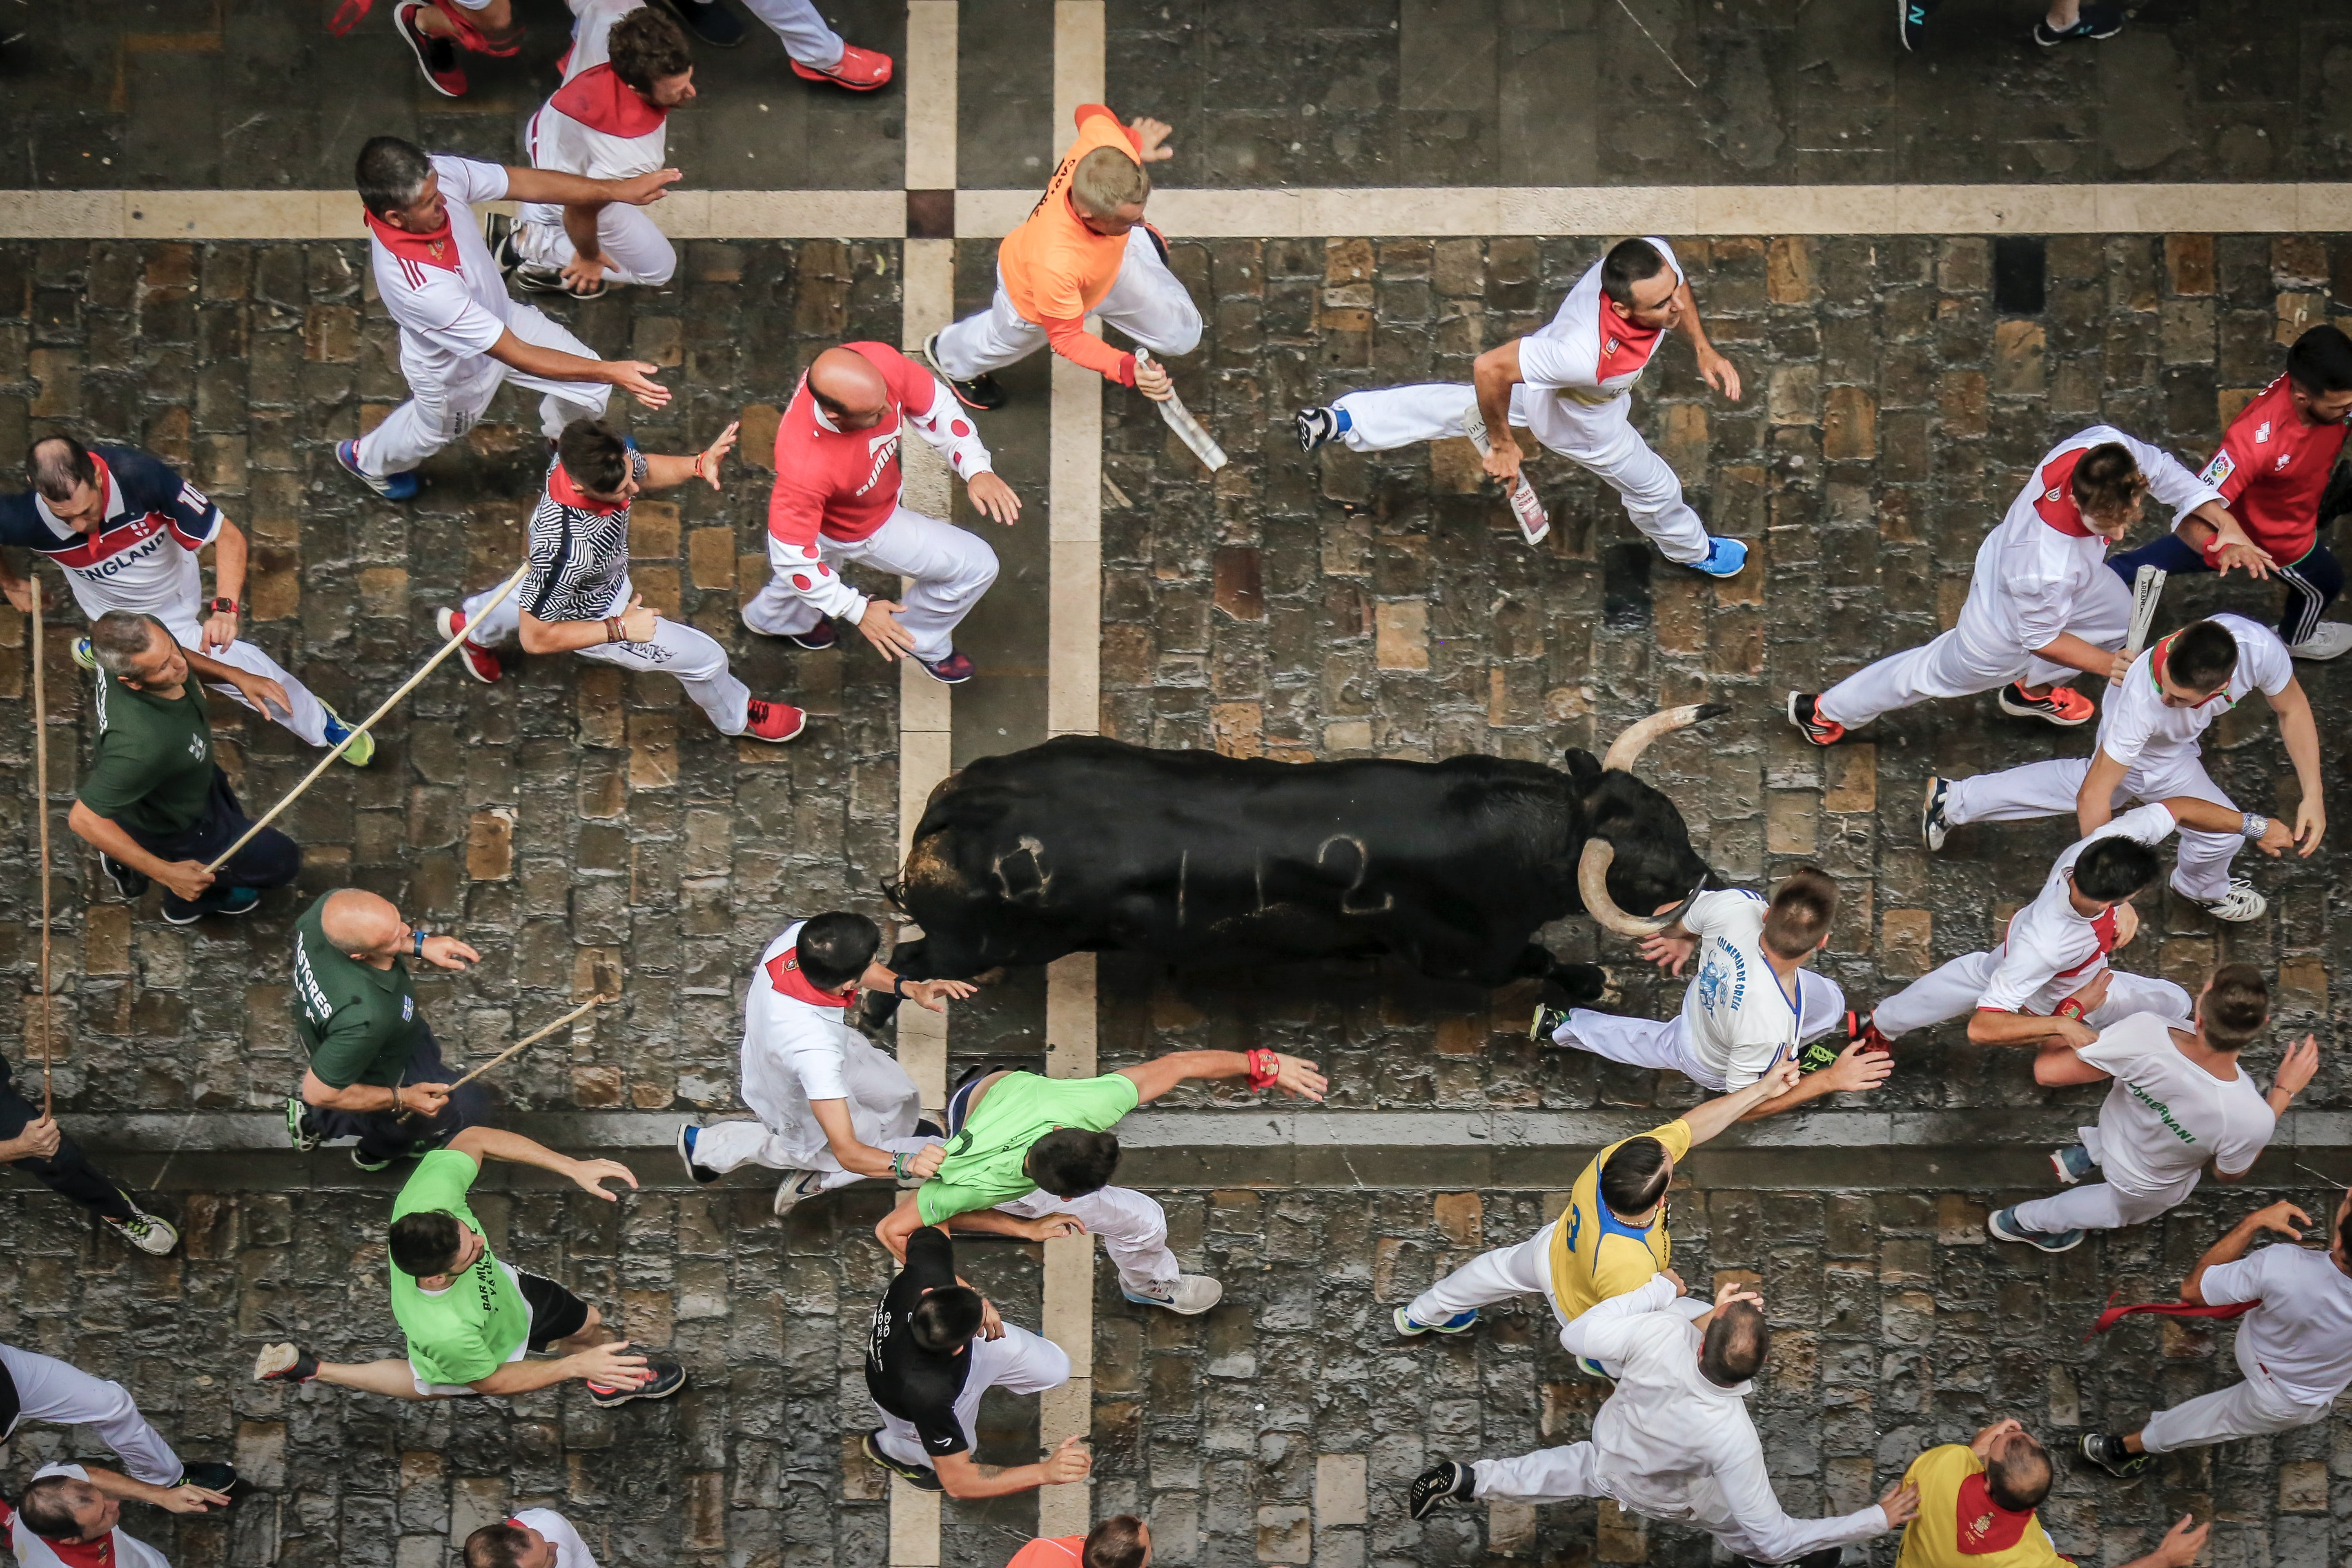 San Fermin parade, Spain, Things to do in Europe in Summer